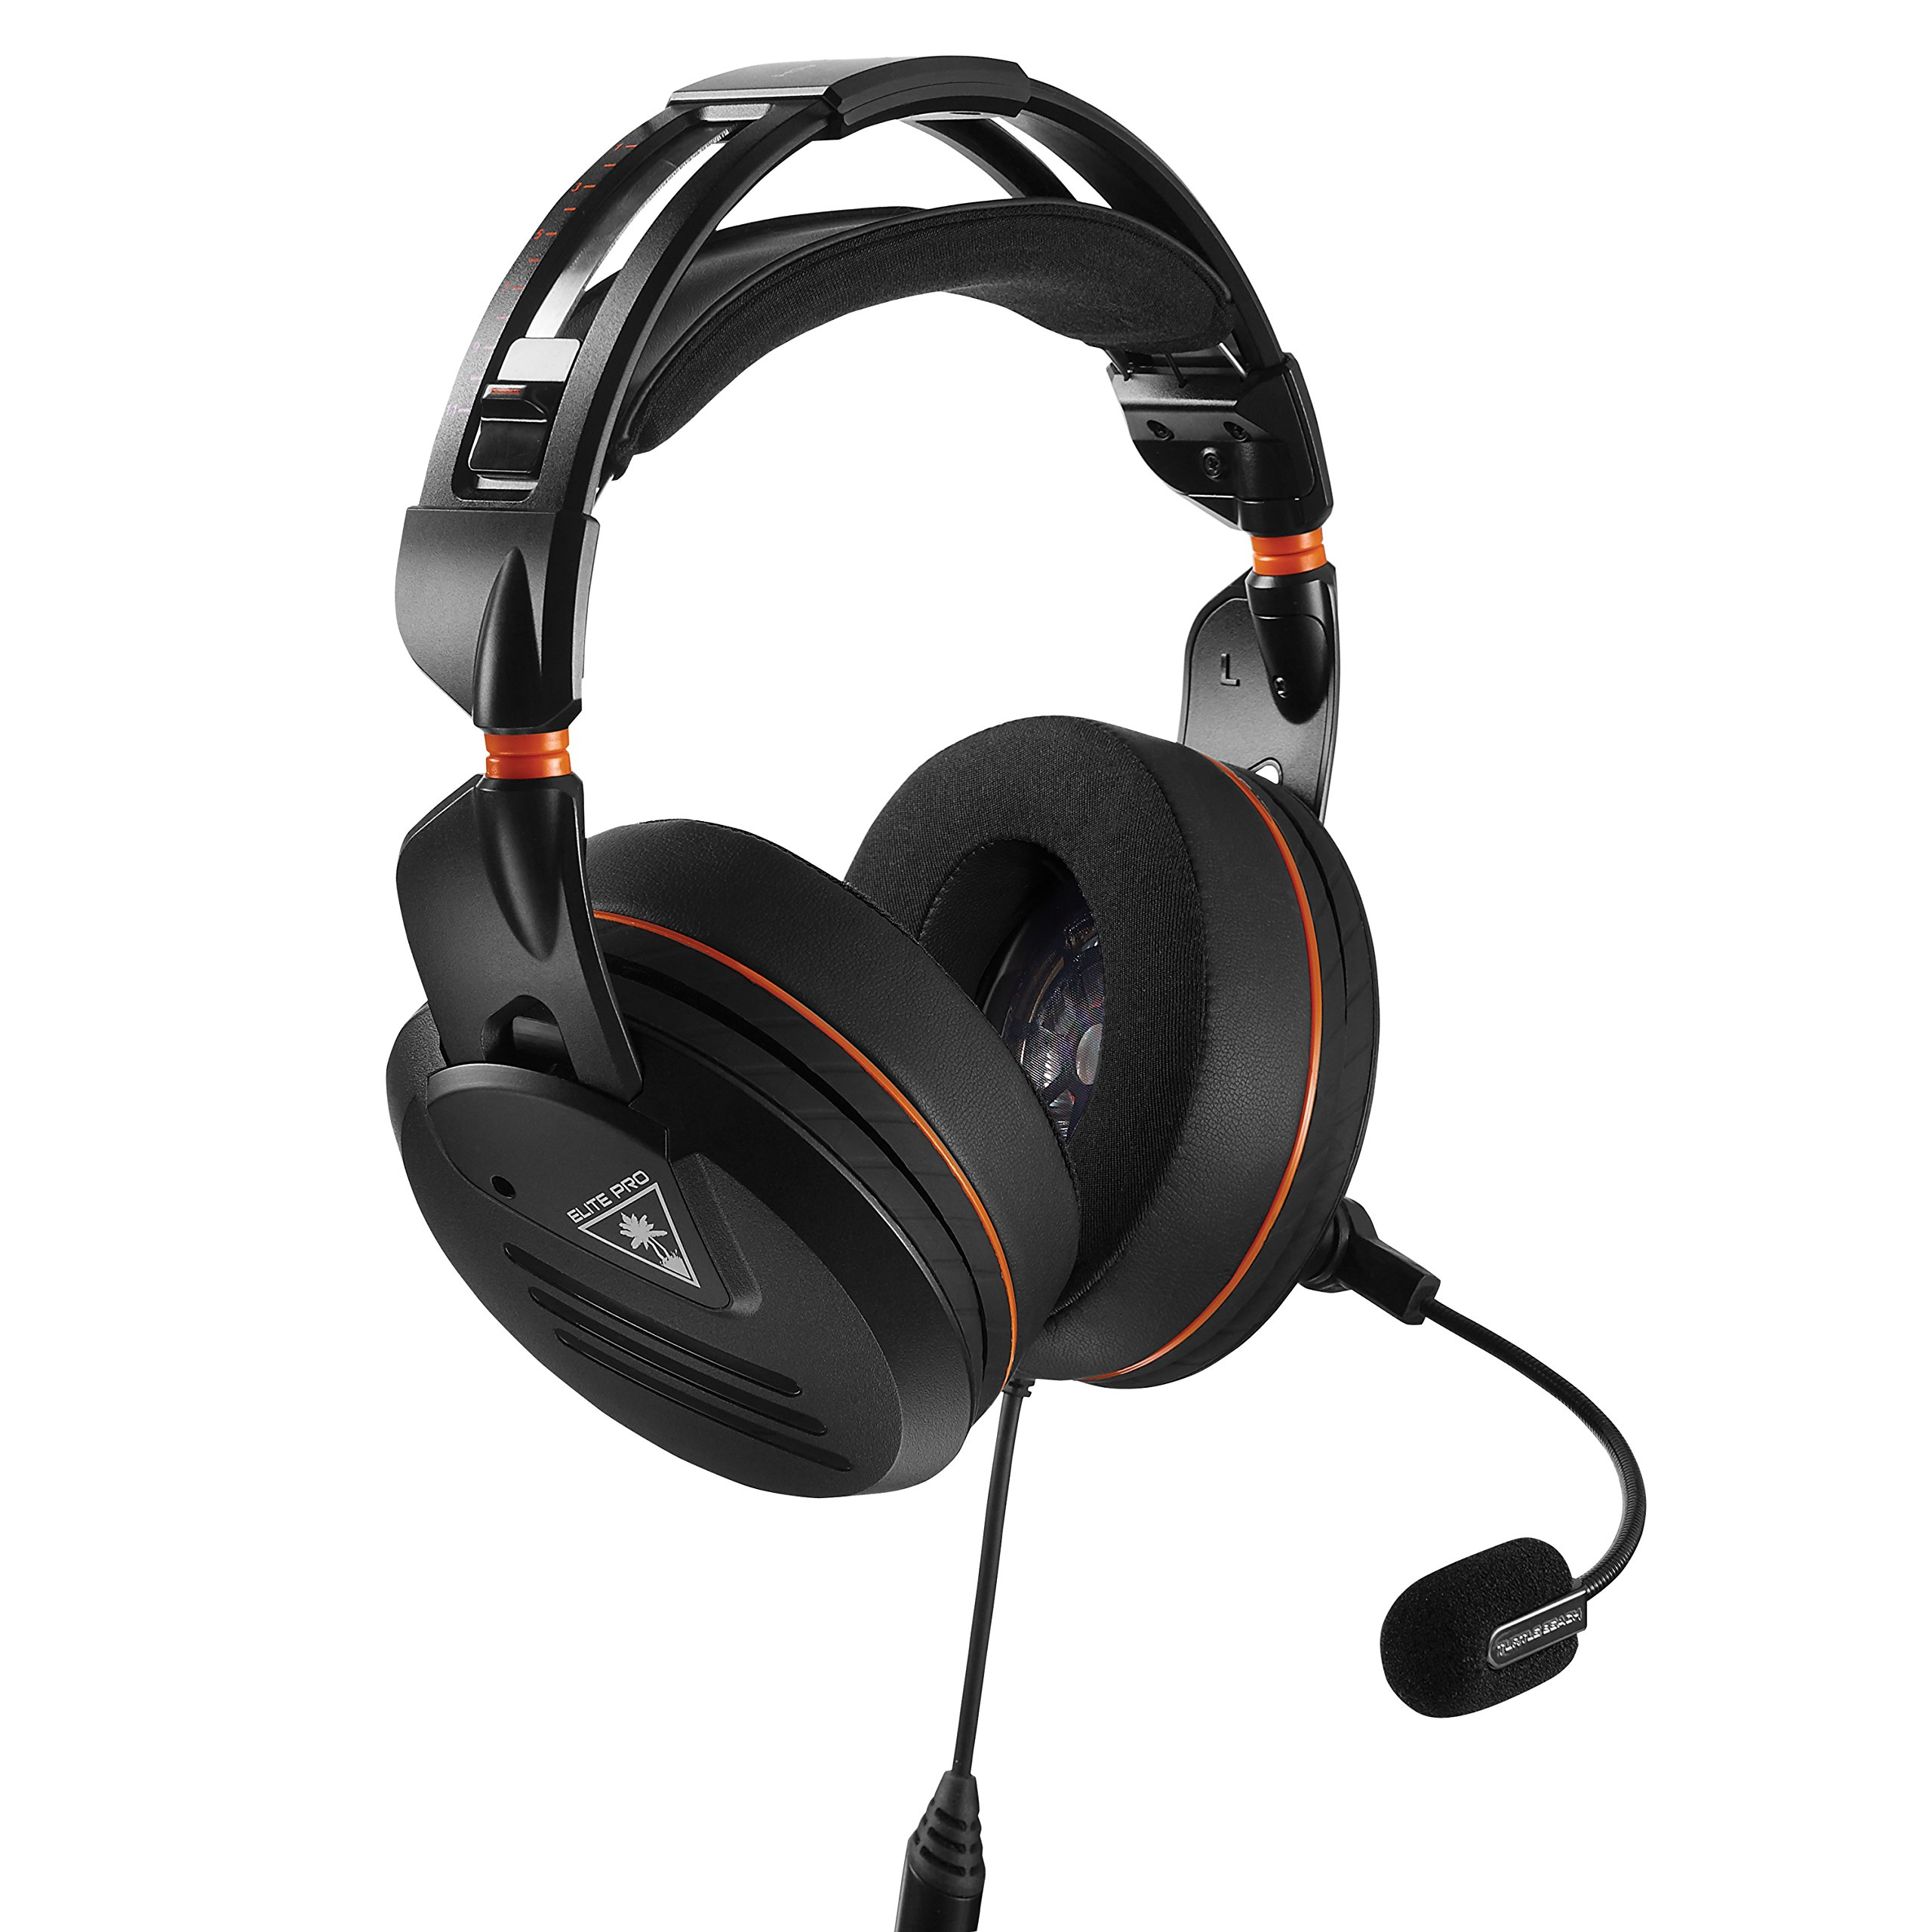 Turtle Beach Elite Pro Tournament Gaming Headset - ComforTec Fit System and TruSpeak Technology -Xbox One, PS4, PC and Mobile Gaming - Xbox One by Turtle Beach